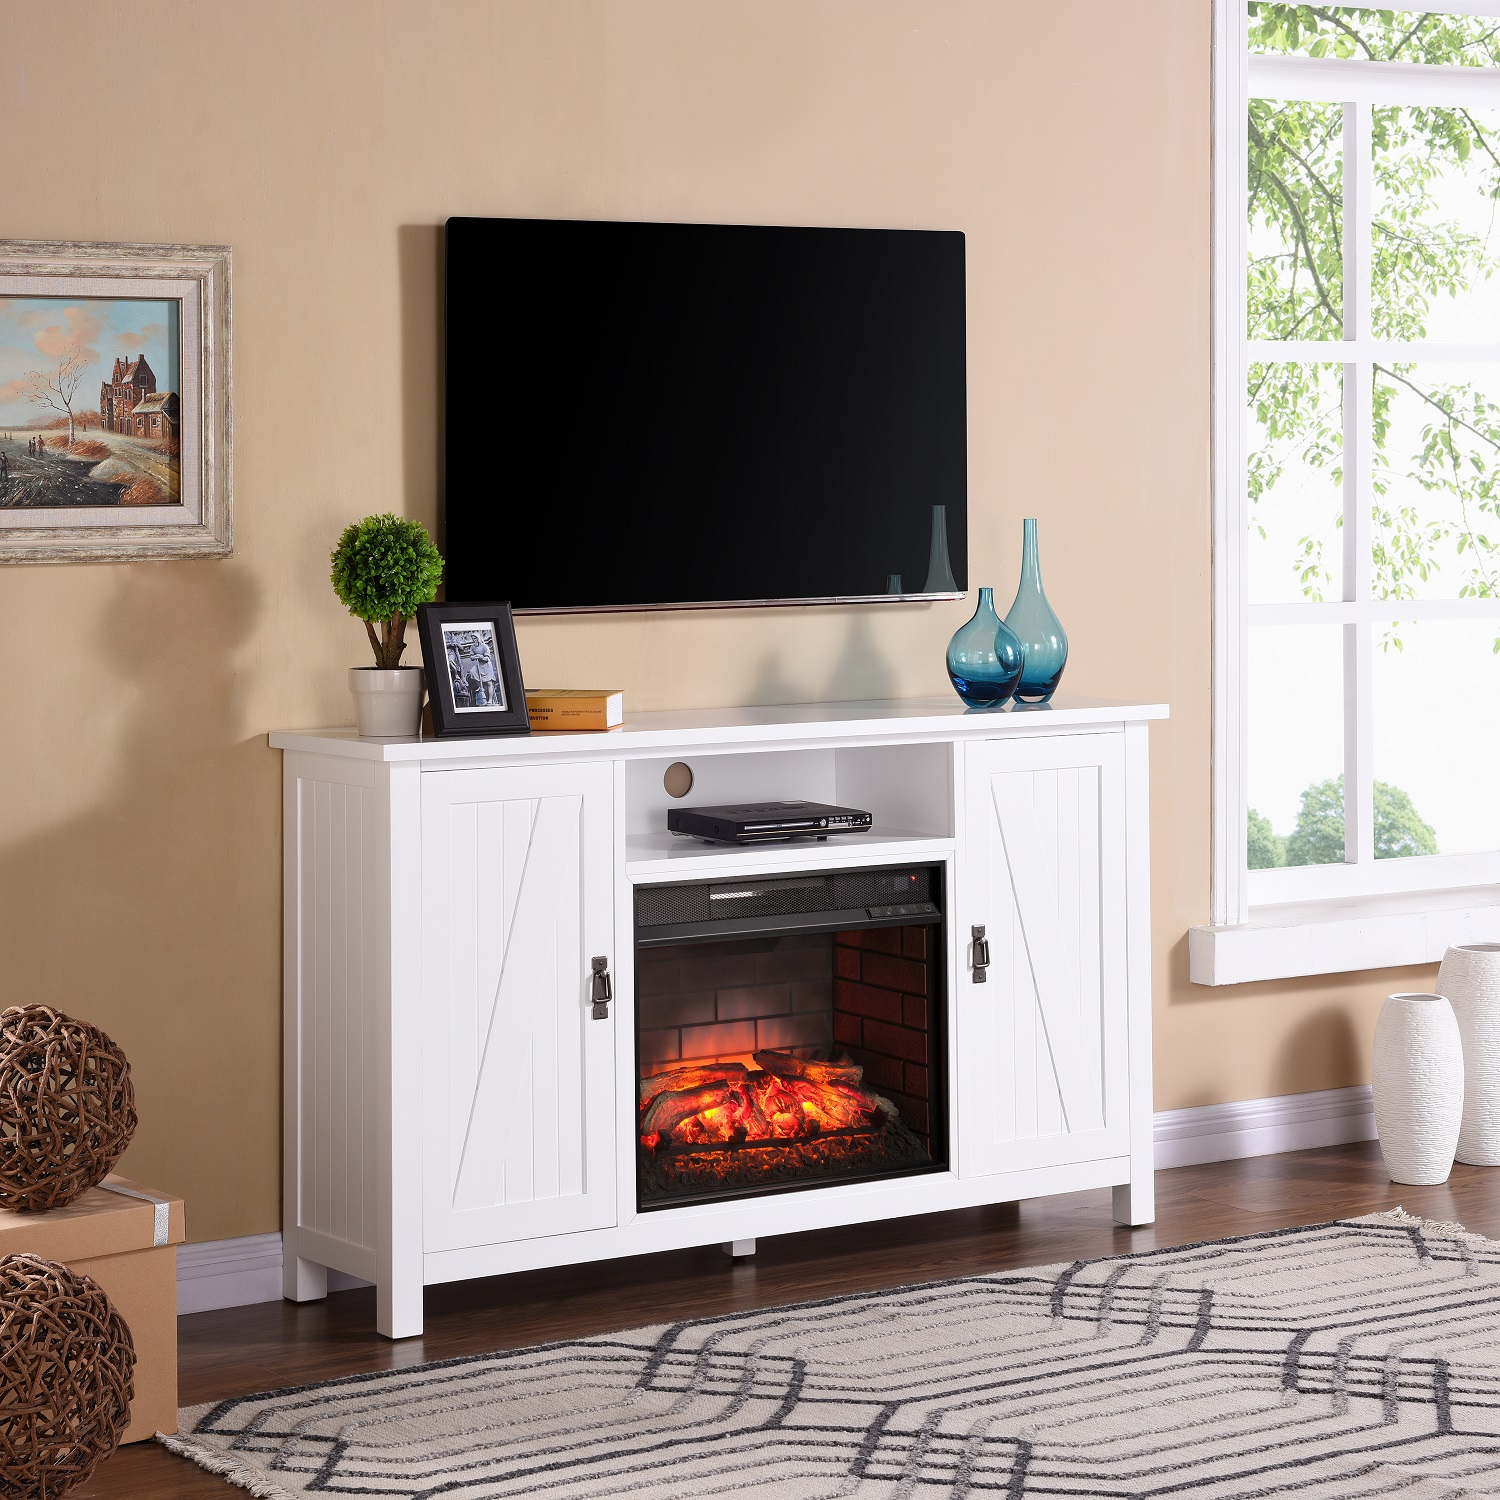 58 Quot Adderly Farmhouse Style Infrared Electric Fireplace Tv